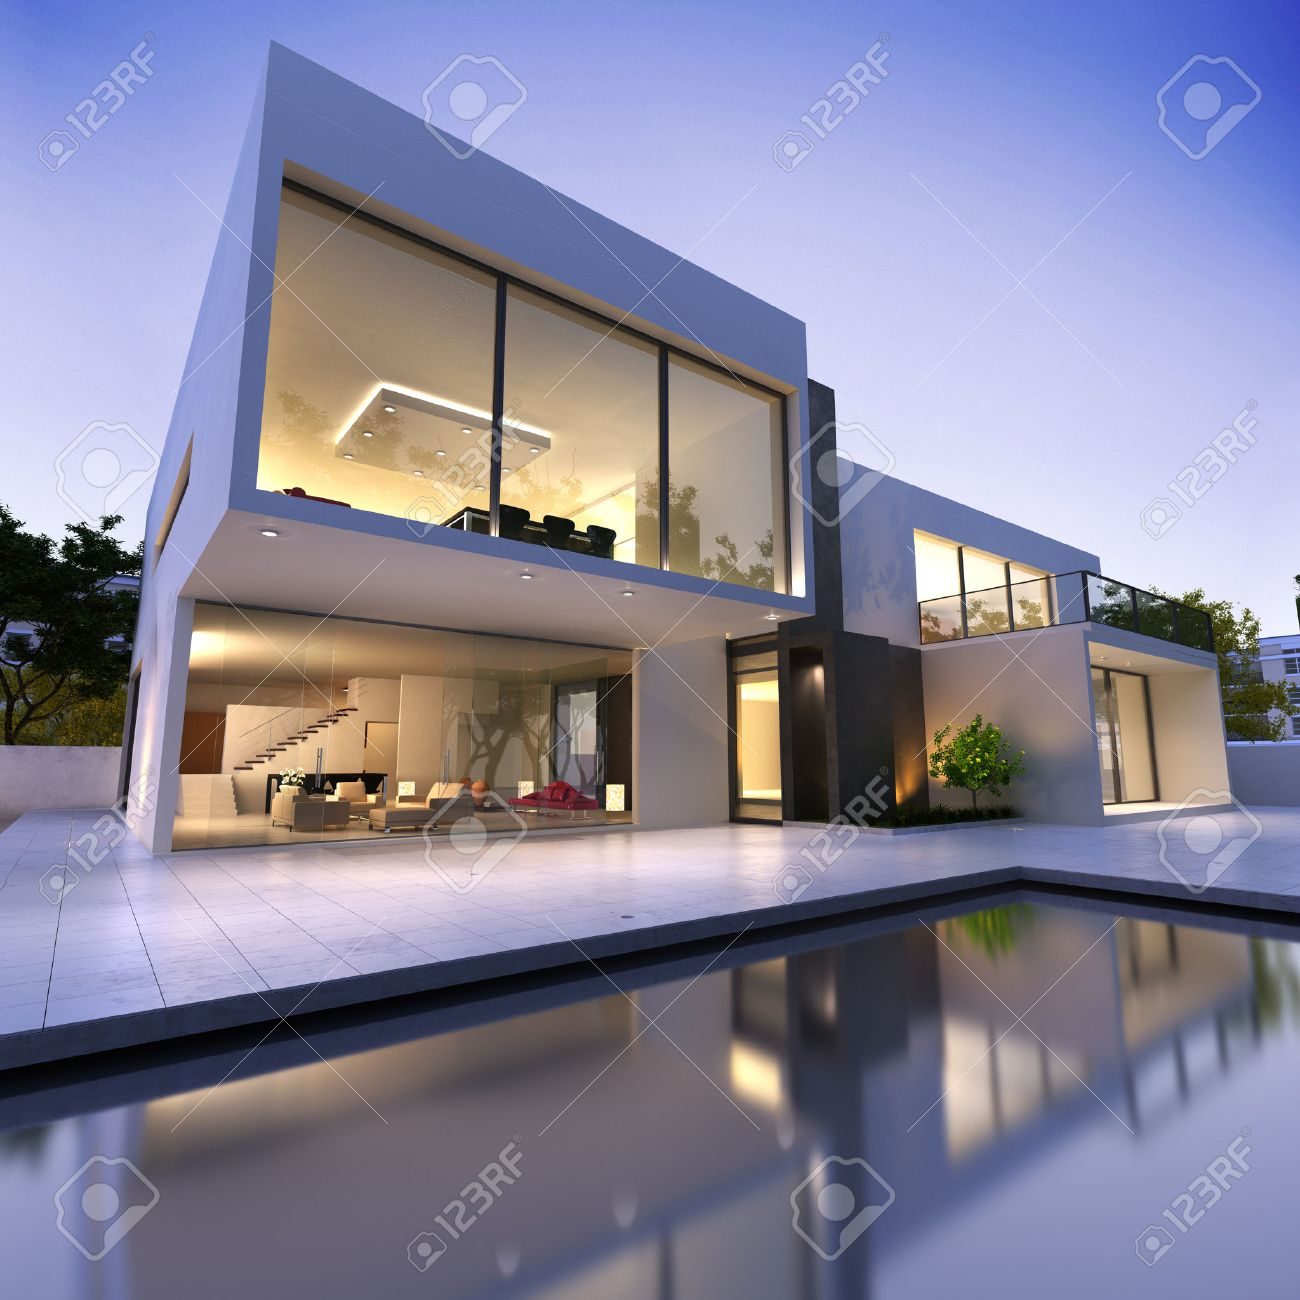 xternal View Of Modern House With Pool t Dusk Stock Photo ... - ^